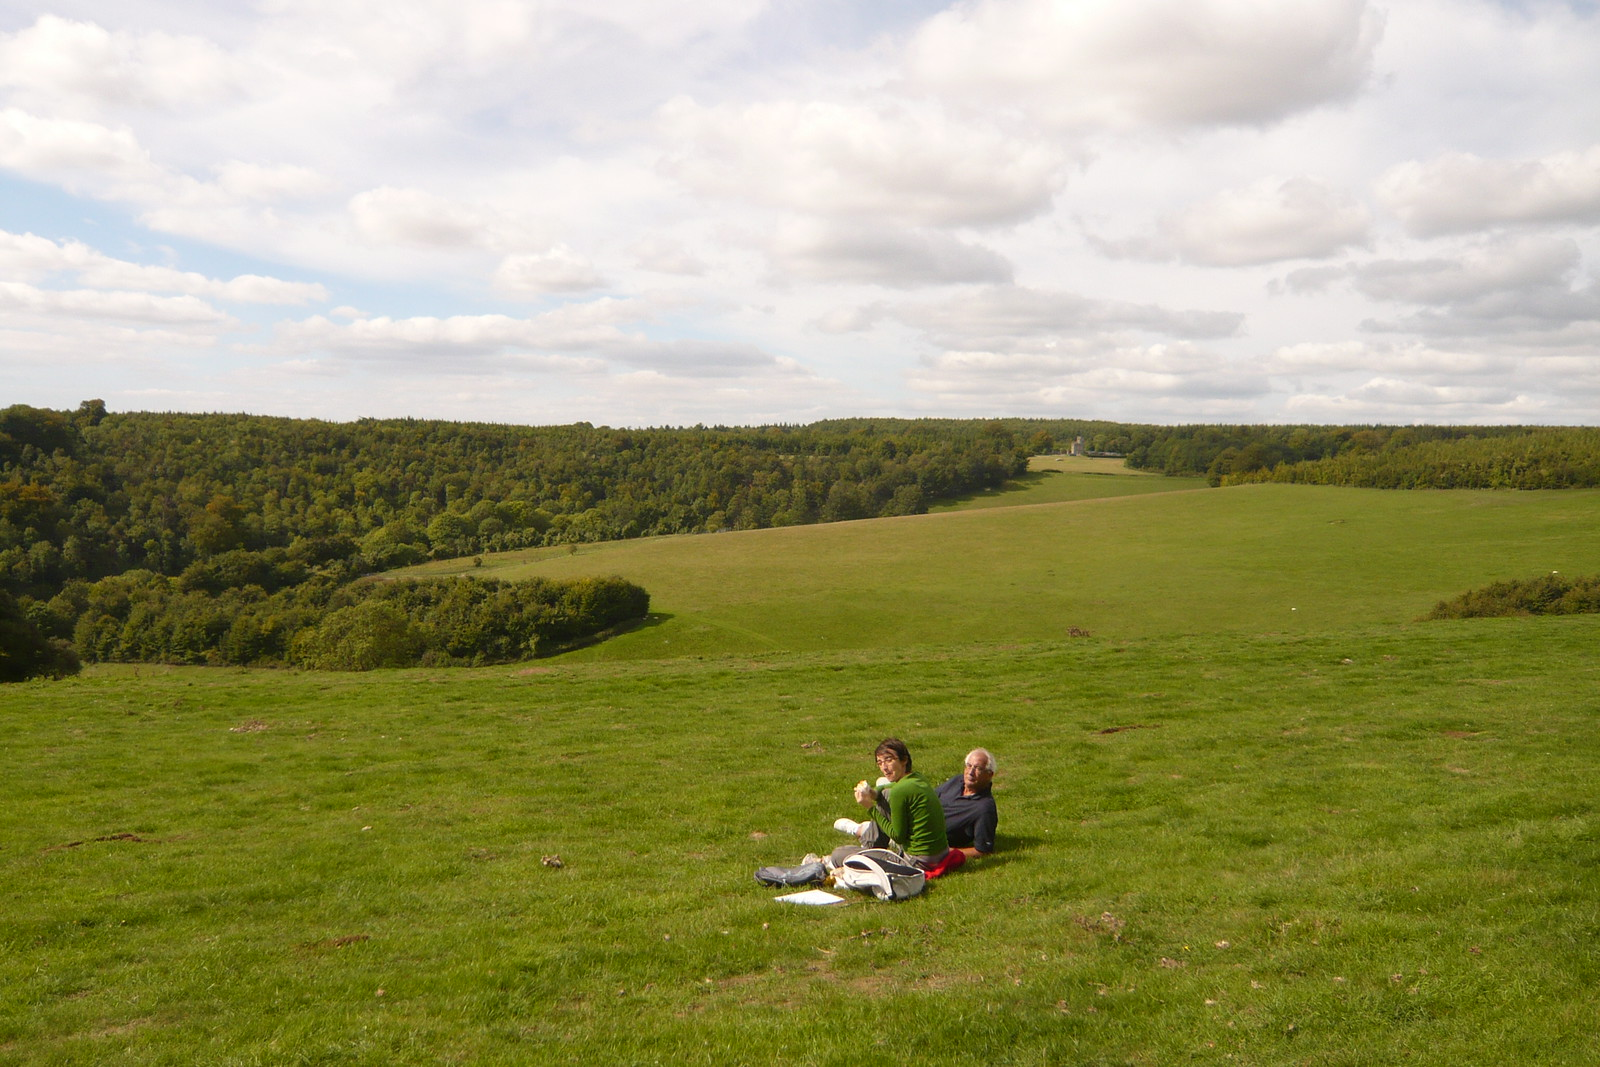 Picnic Lunch in Arundel With another Tower in the distance